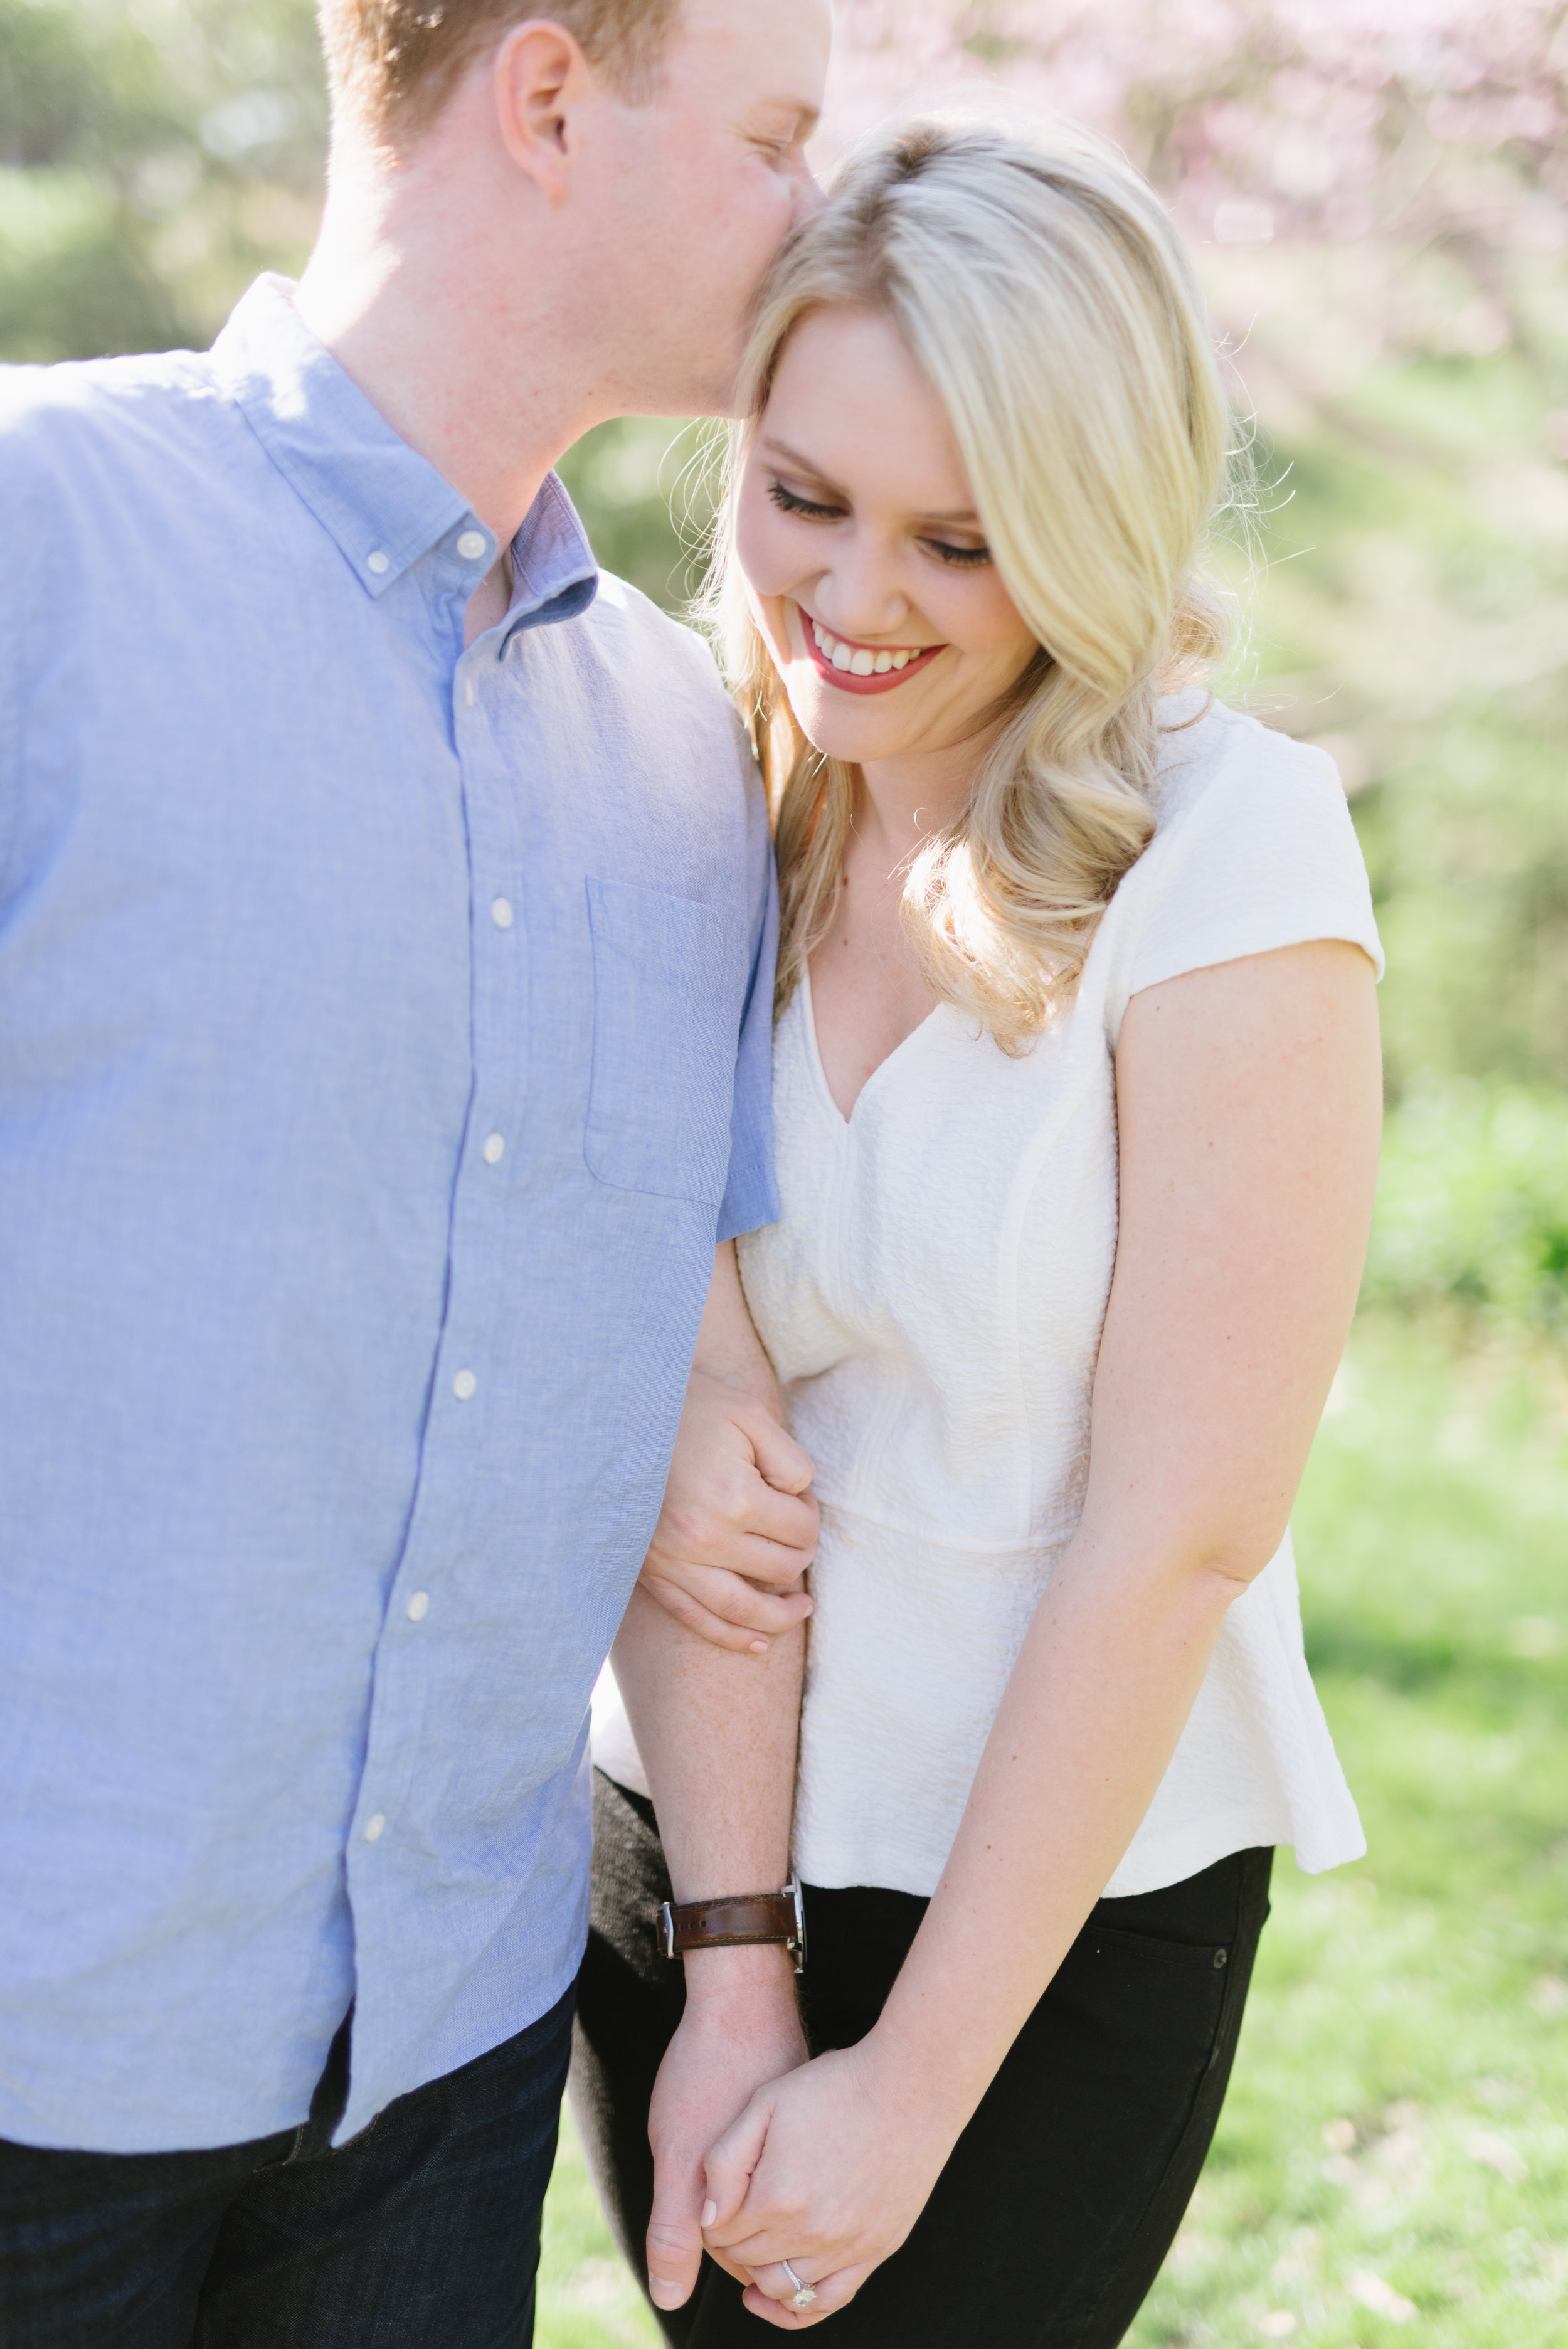 Callie+JonEngaged-7.JPG